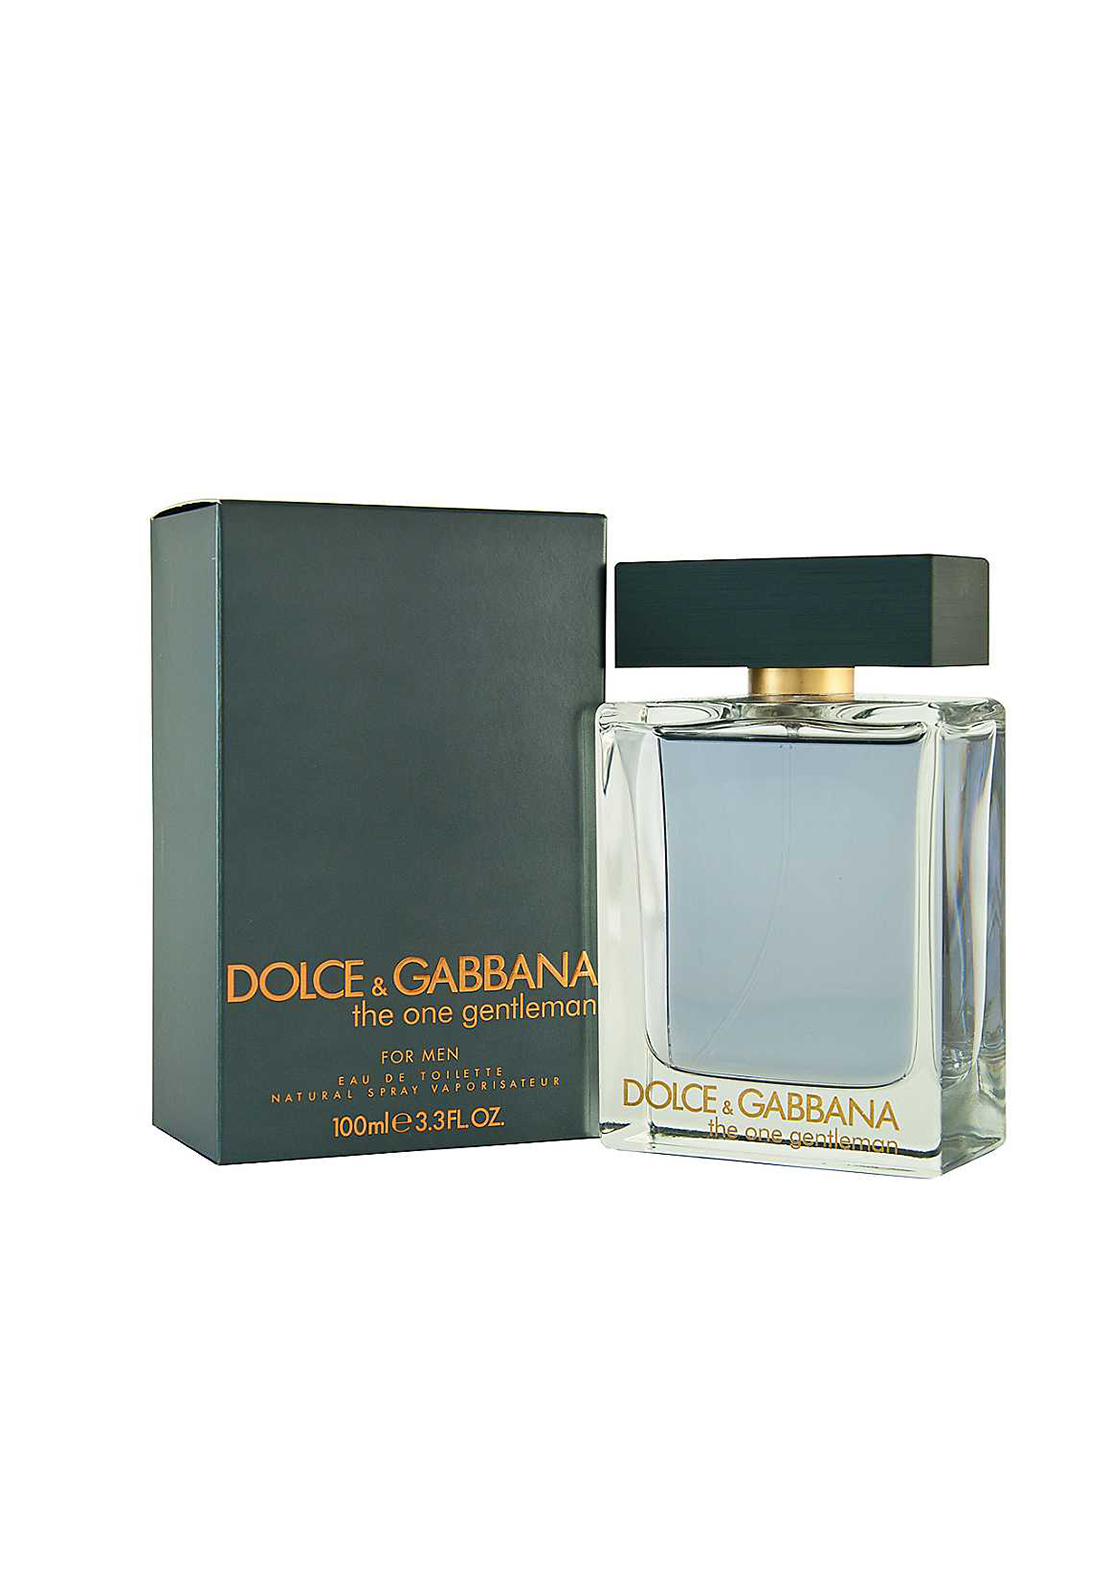 Dolce and Gabbana The One Gentleman Eau de Toilette, 50ml